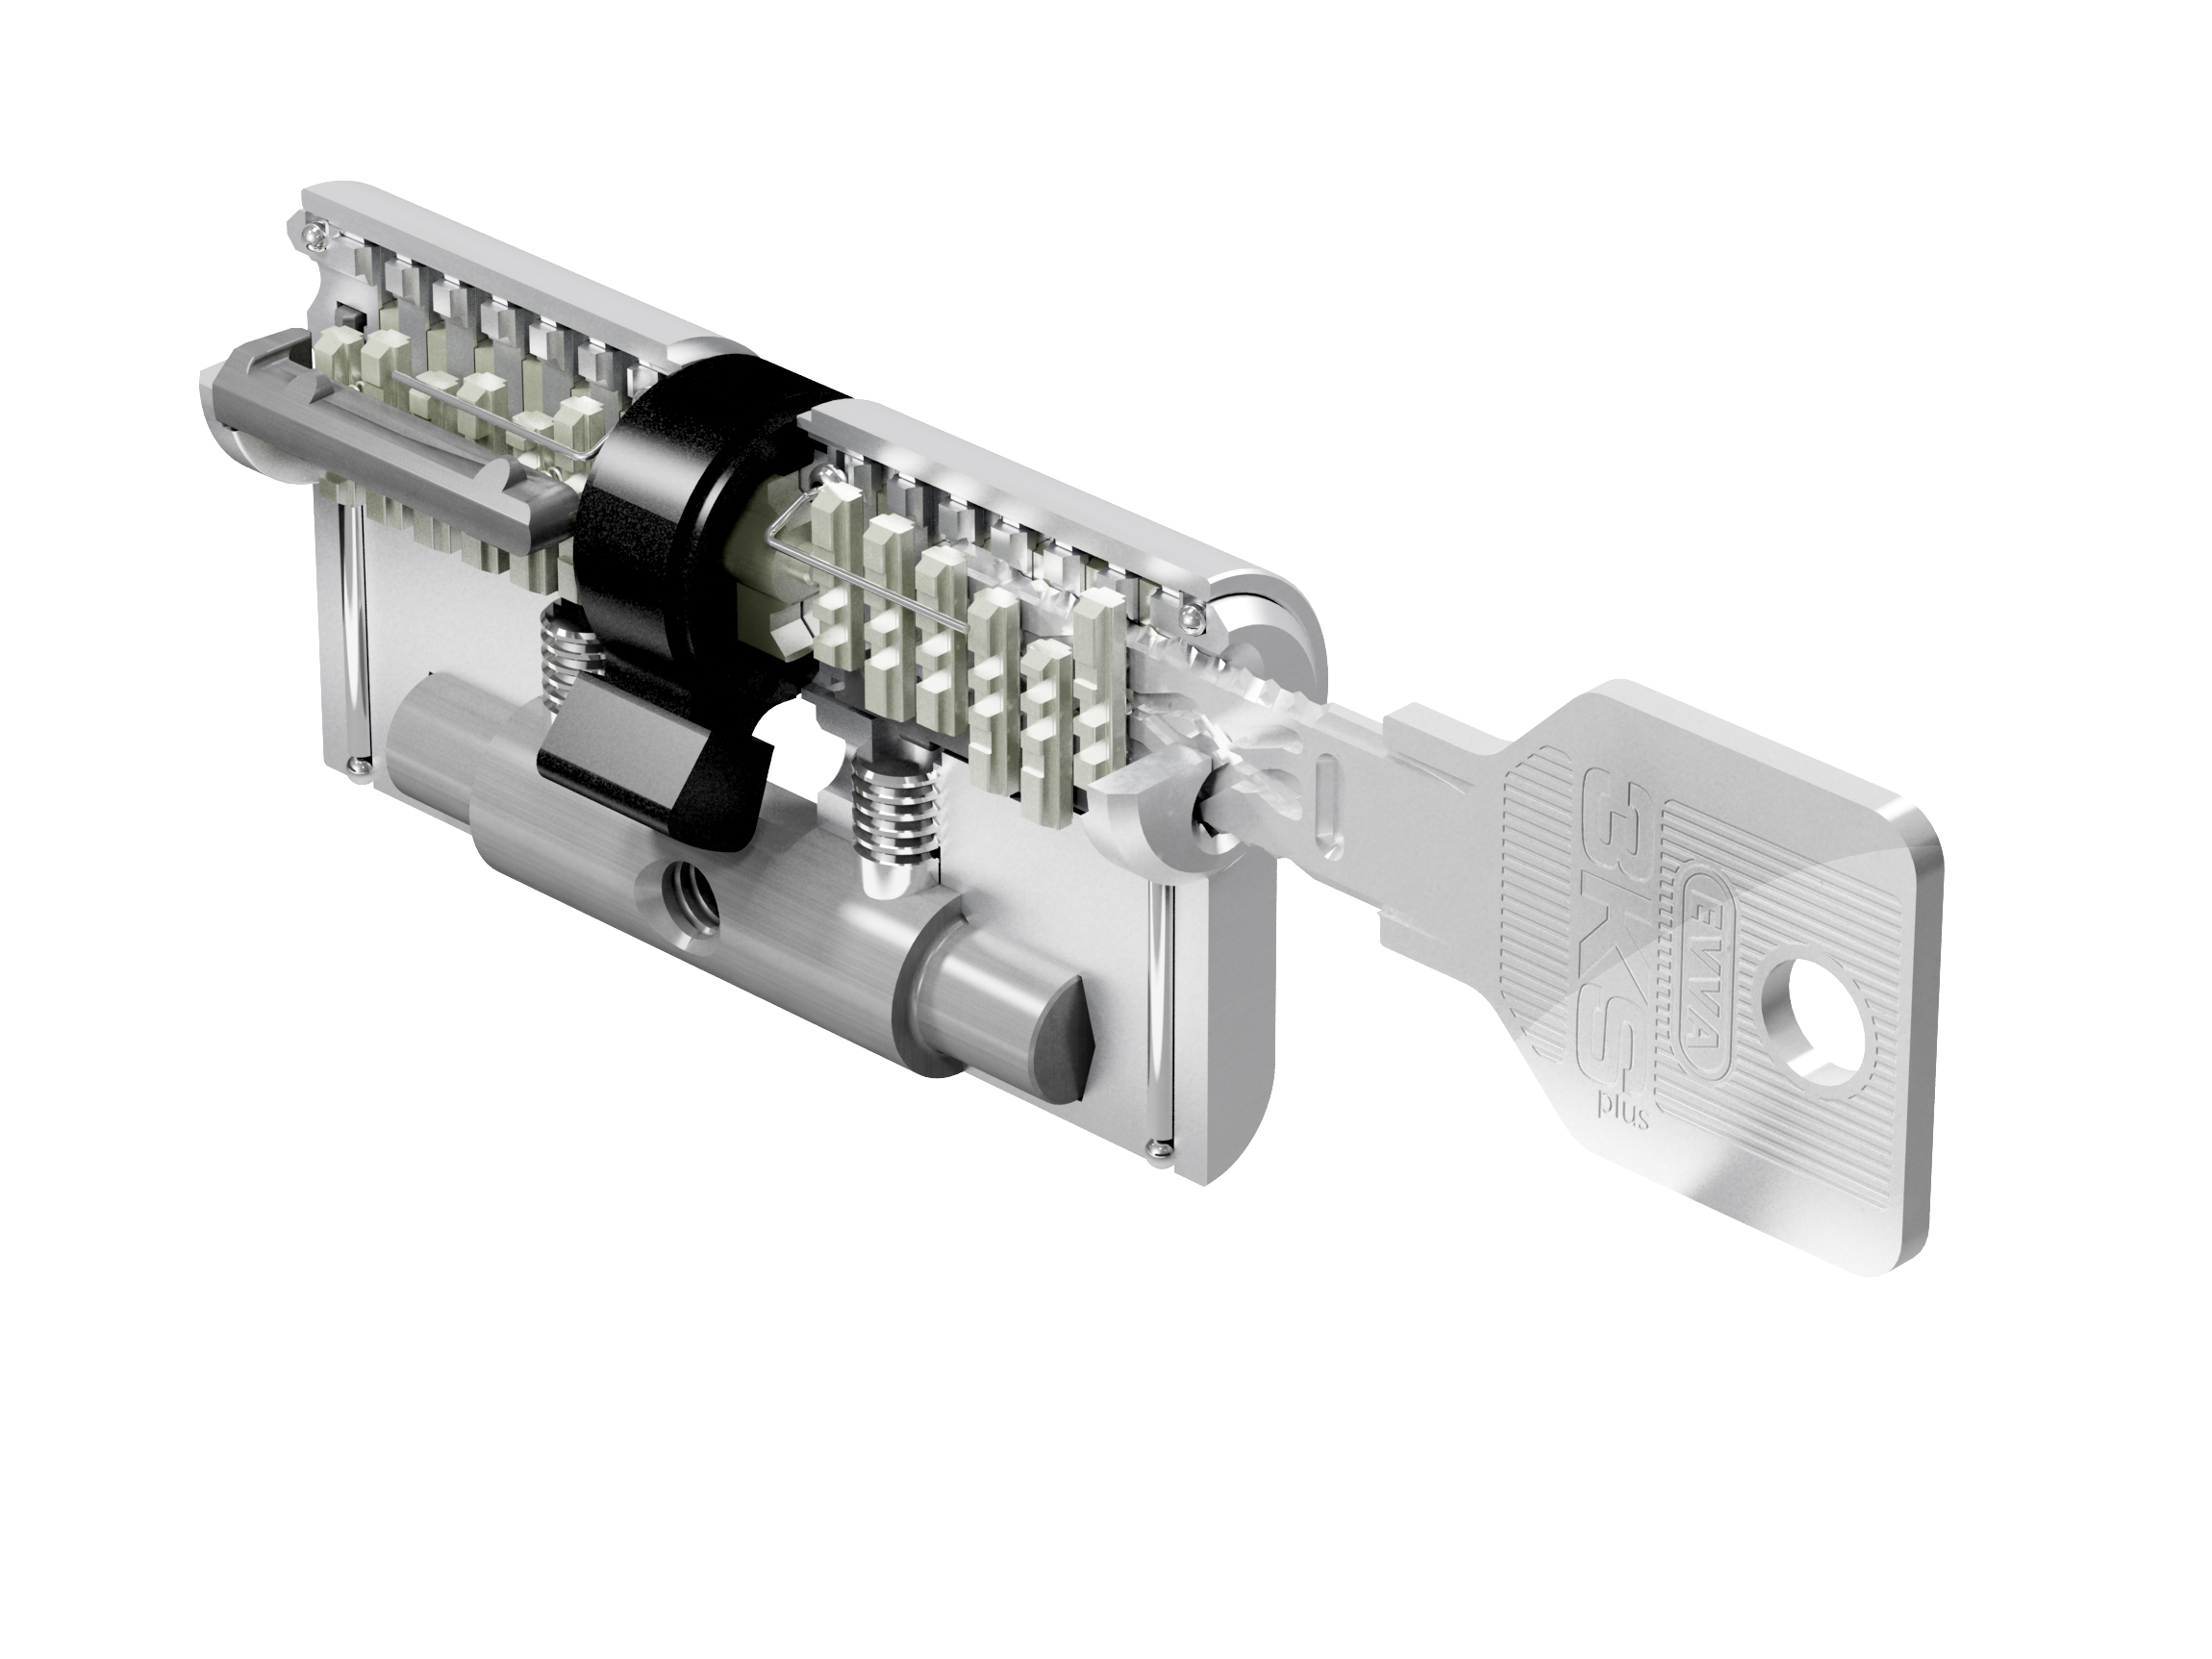 Цилиндр Evva 3KS L67 - Evva-locks.ru